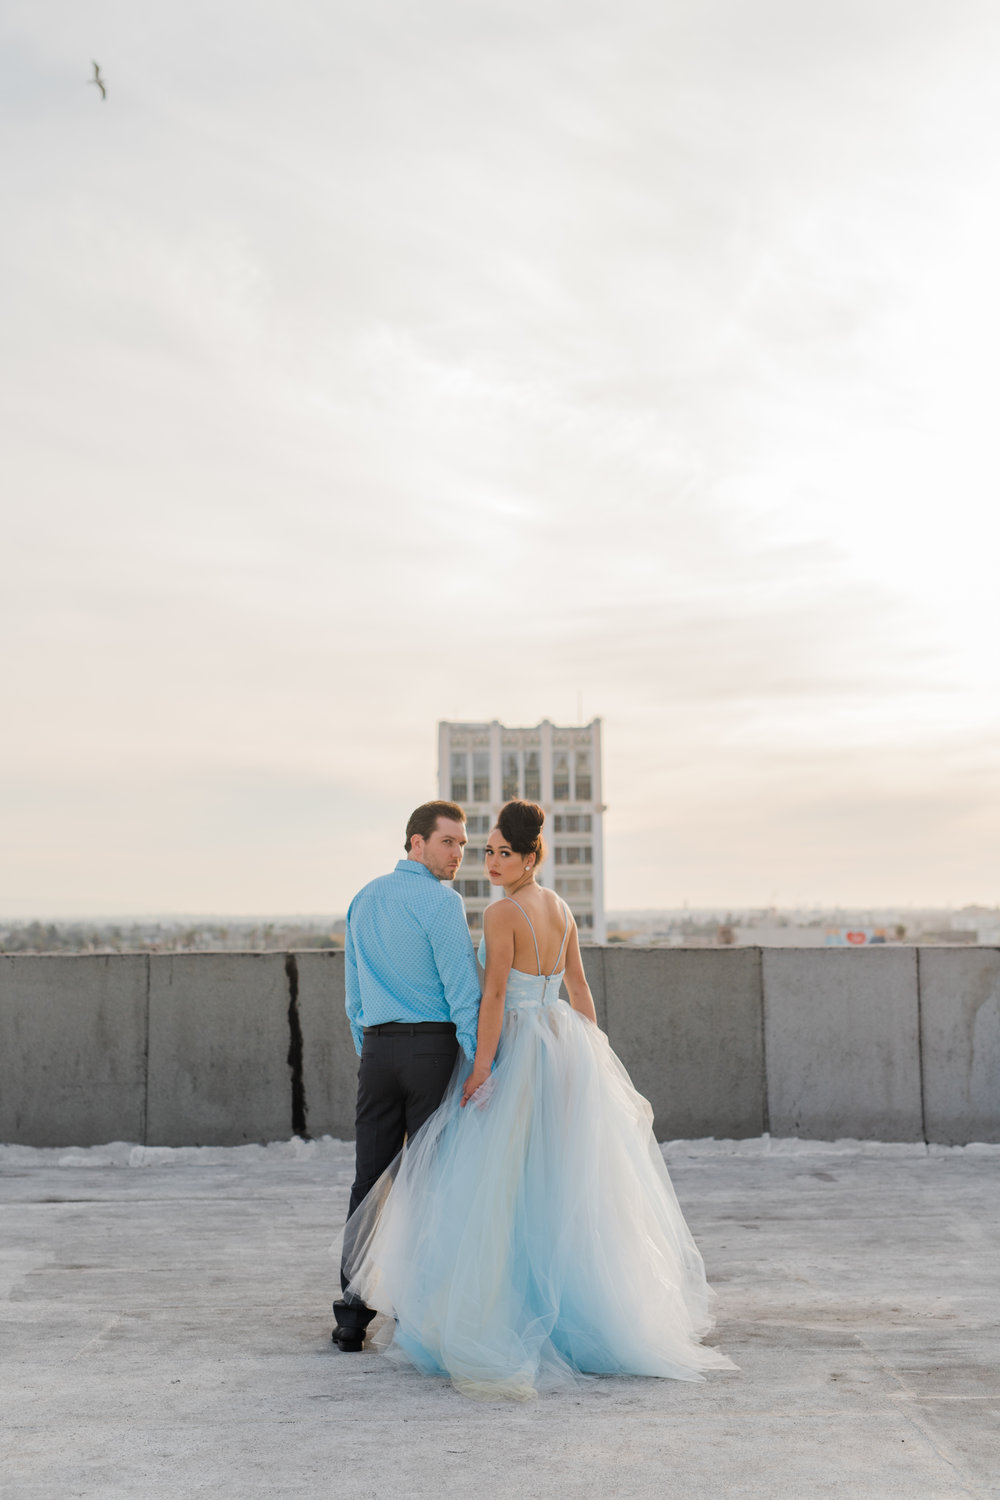 Photography, Los Angeles Photographer, Elopement Photography